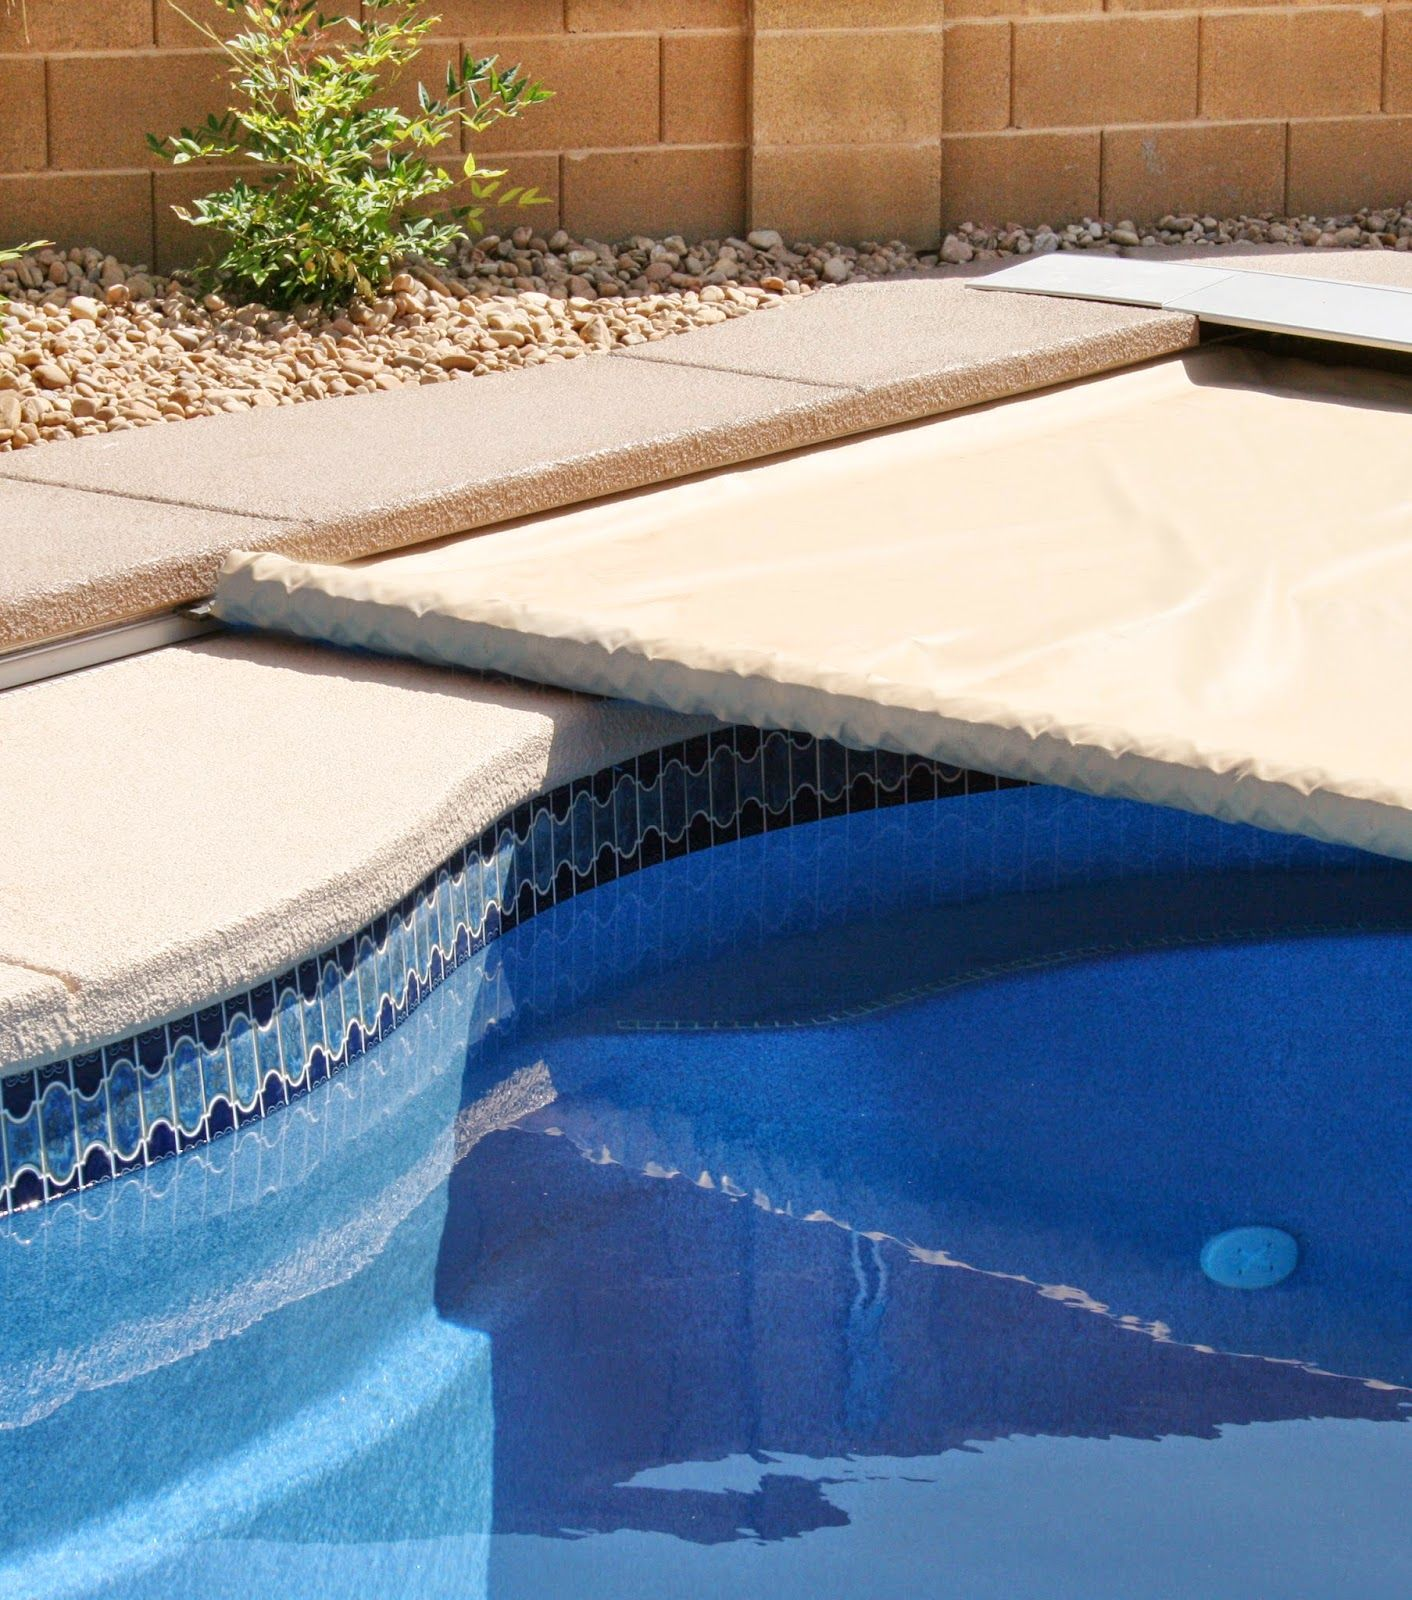 Coverstar Safety Swimming Pool Covers For Automatic And Solid Mesh Pools Pinterest